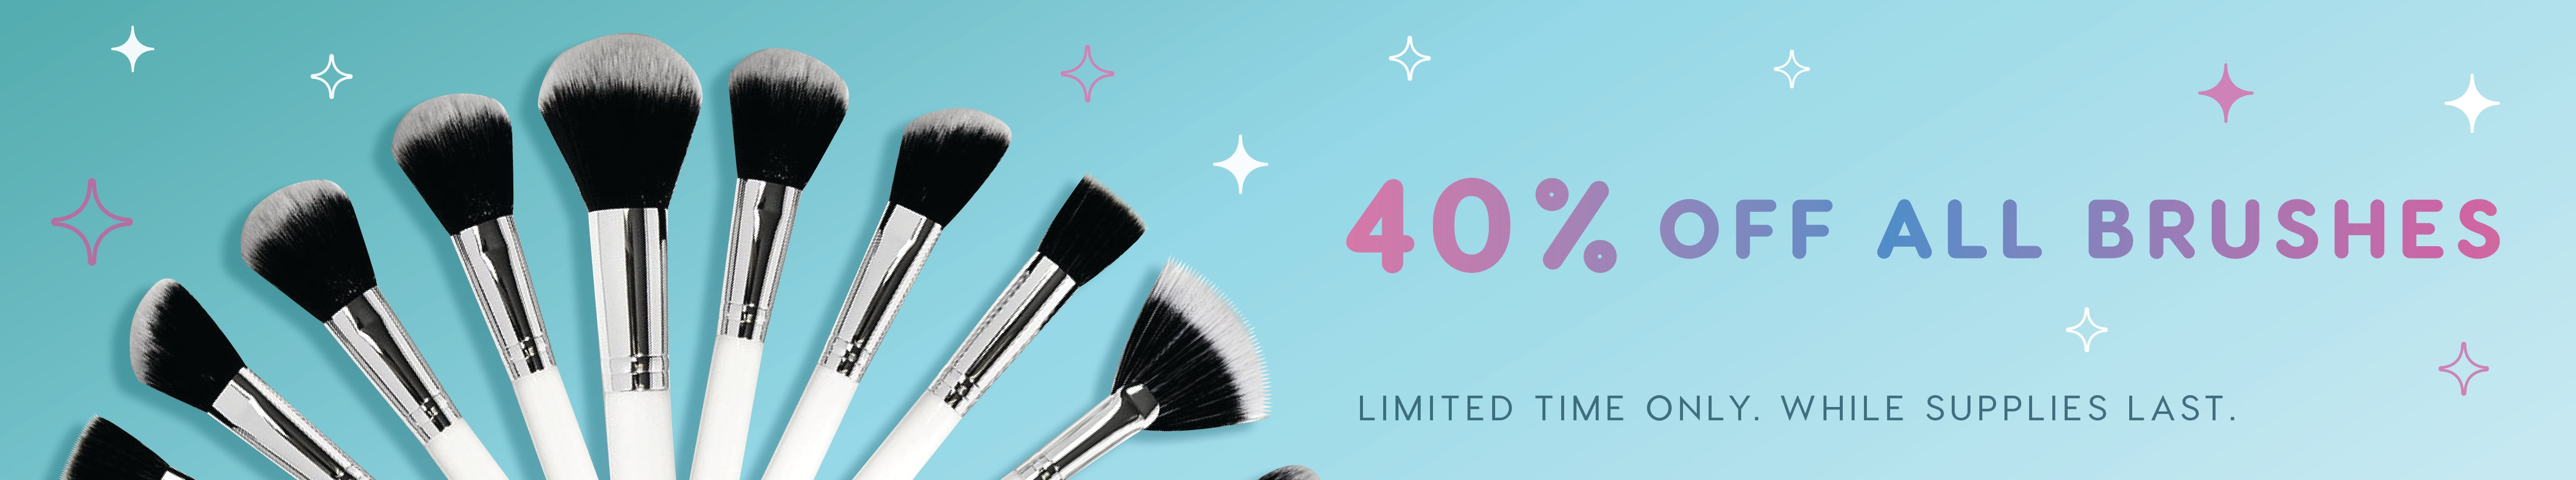 40% Off Brushes